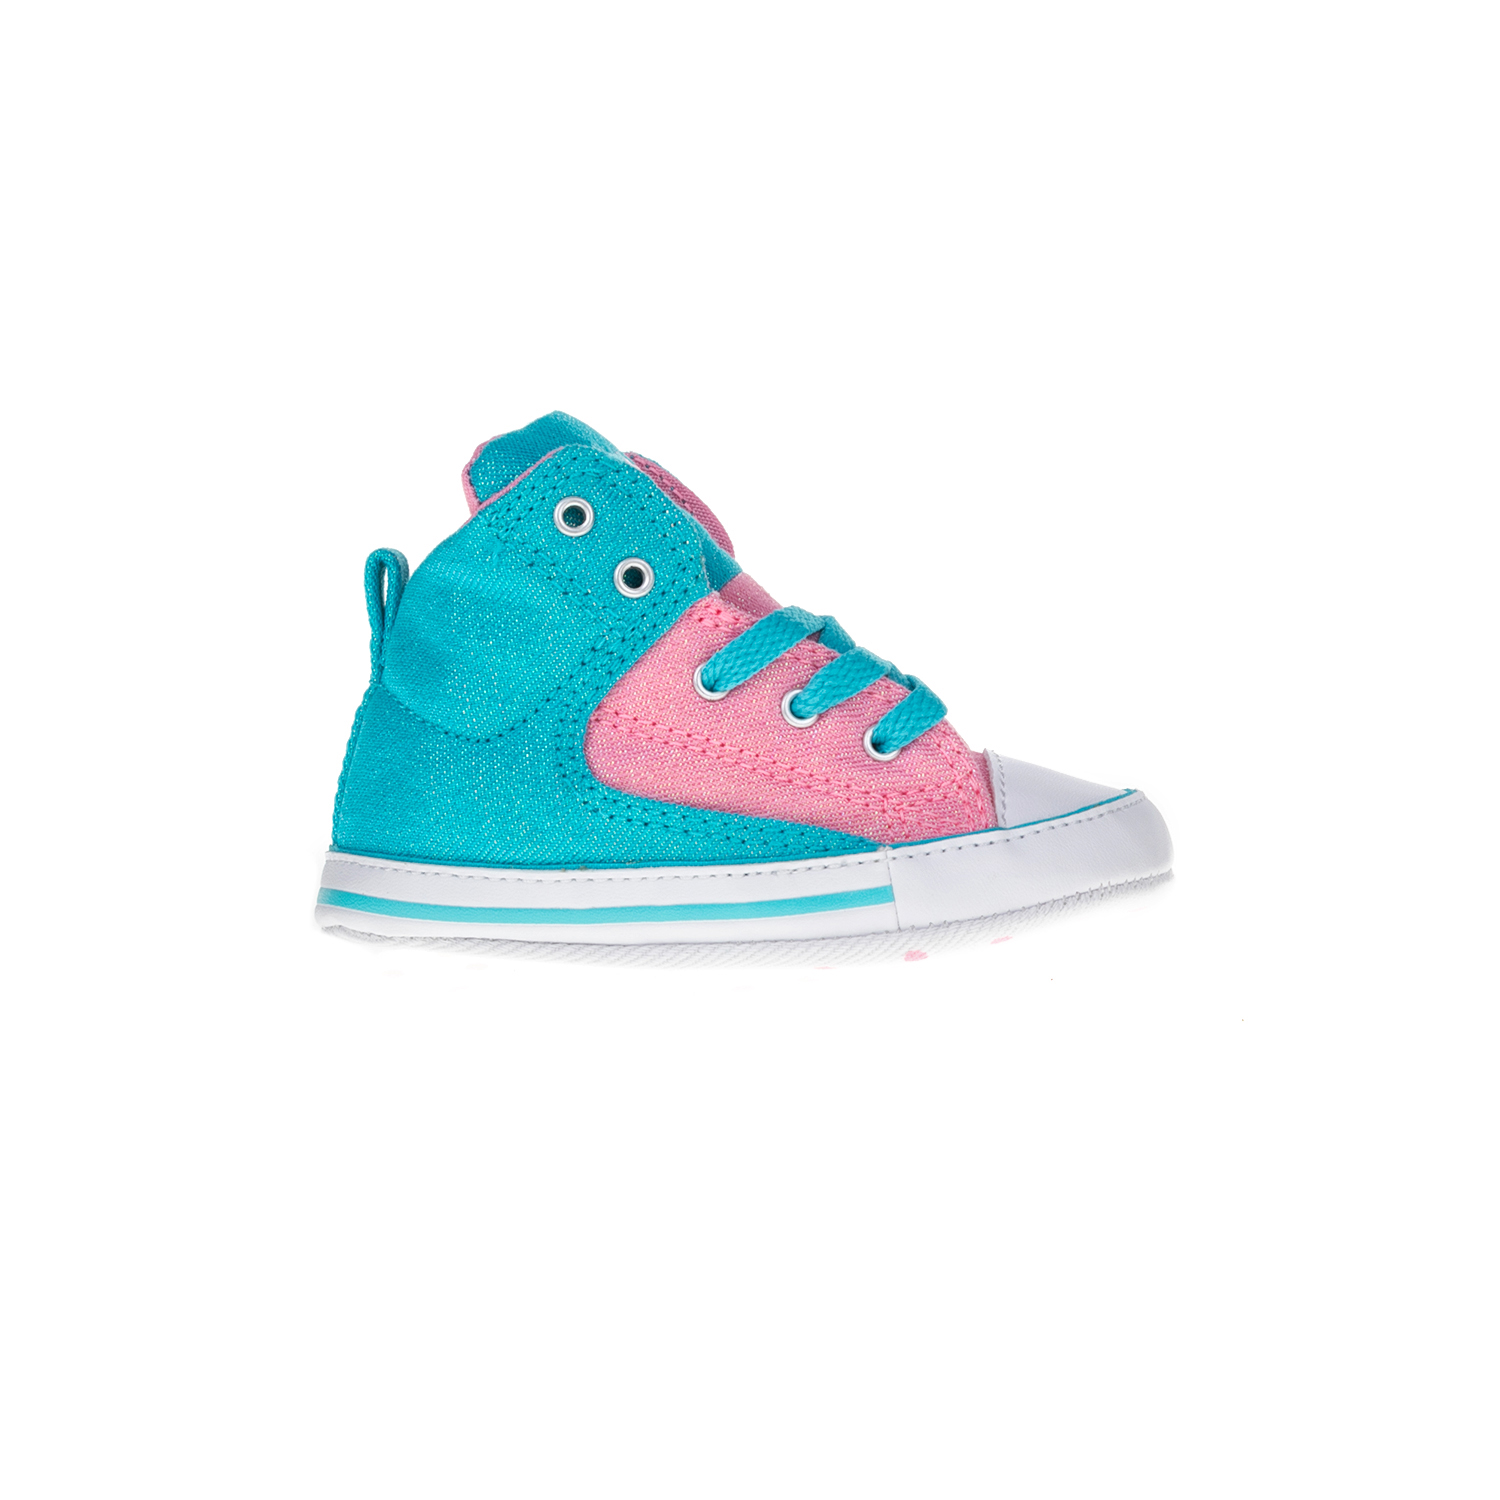 9249a8ea88e CONVERSE – Βρεφικά μποτάκια Chuck Taylor All Star First St ροζ-μπλε  Παιδικά/Baby